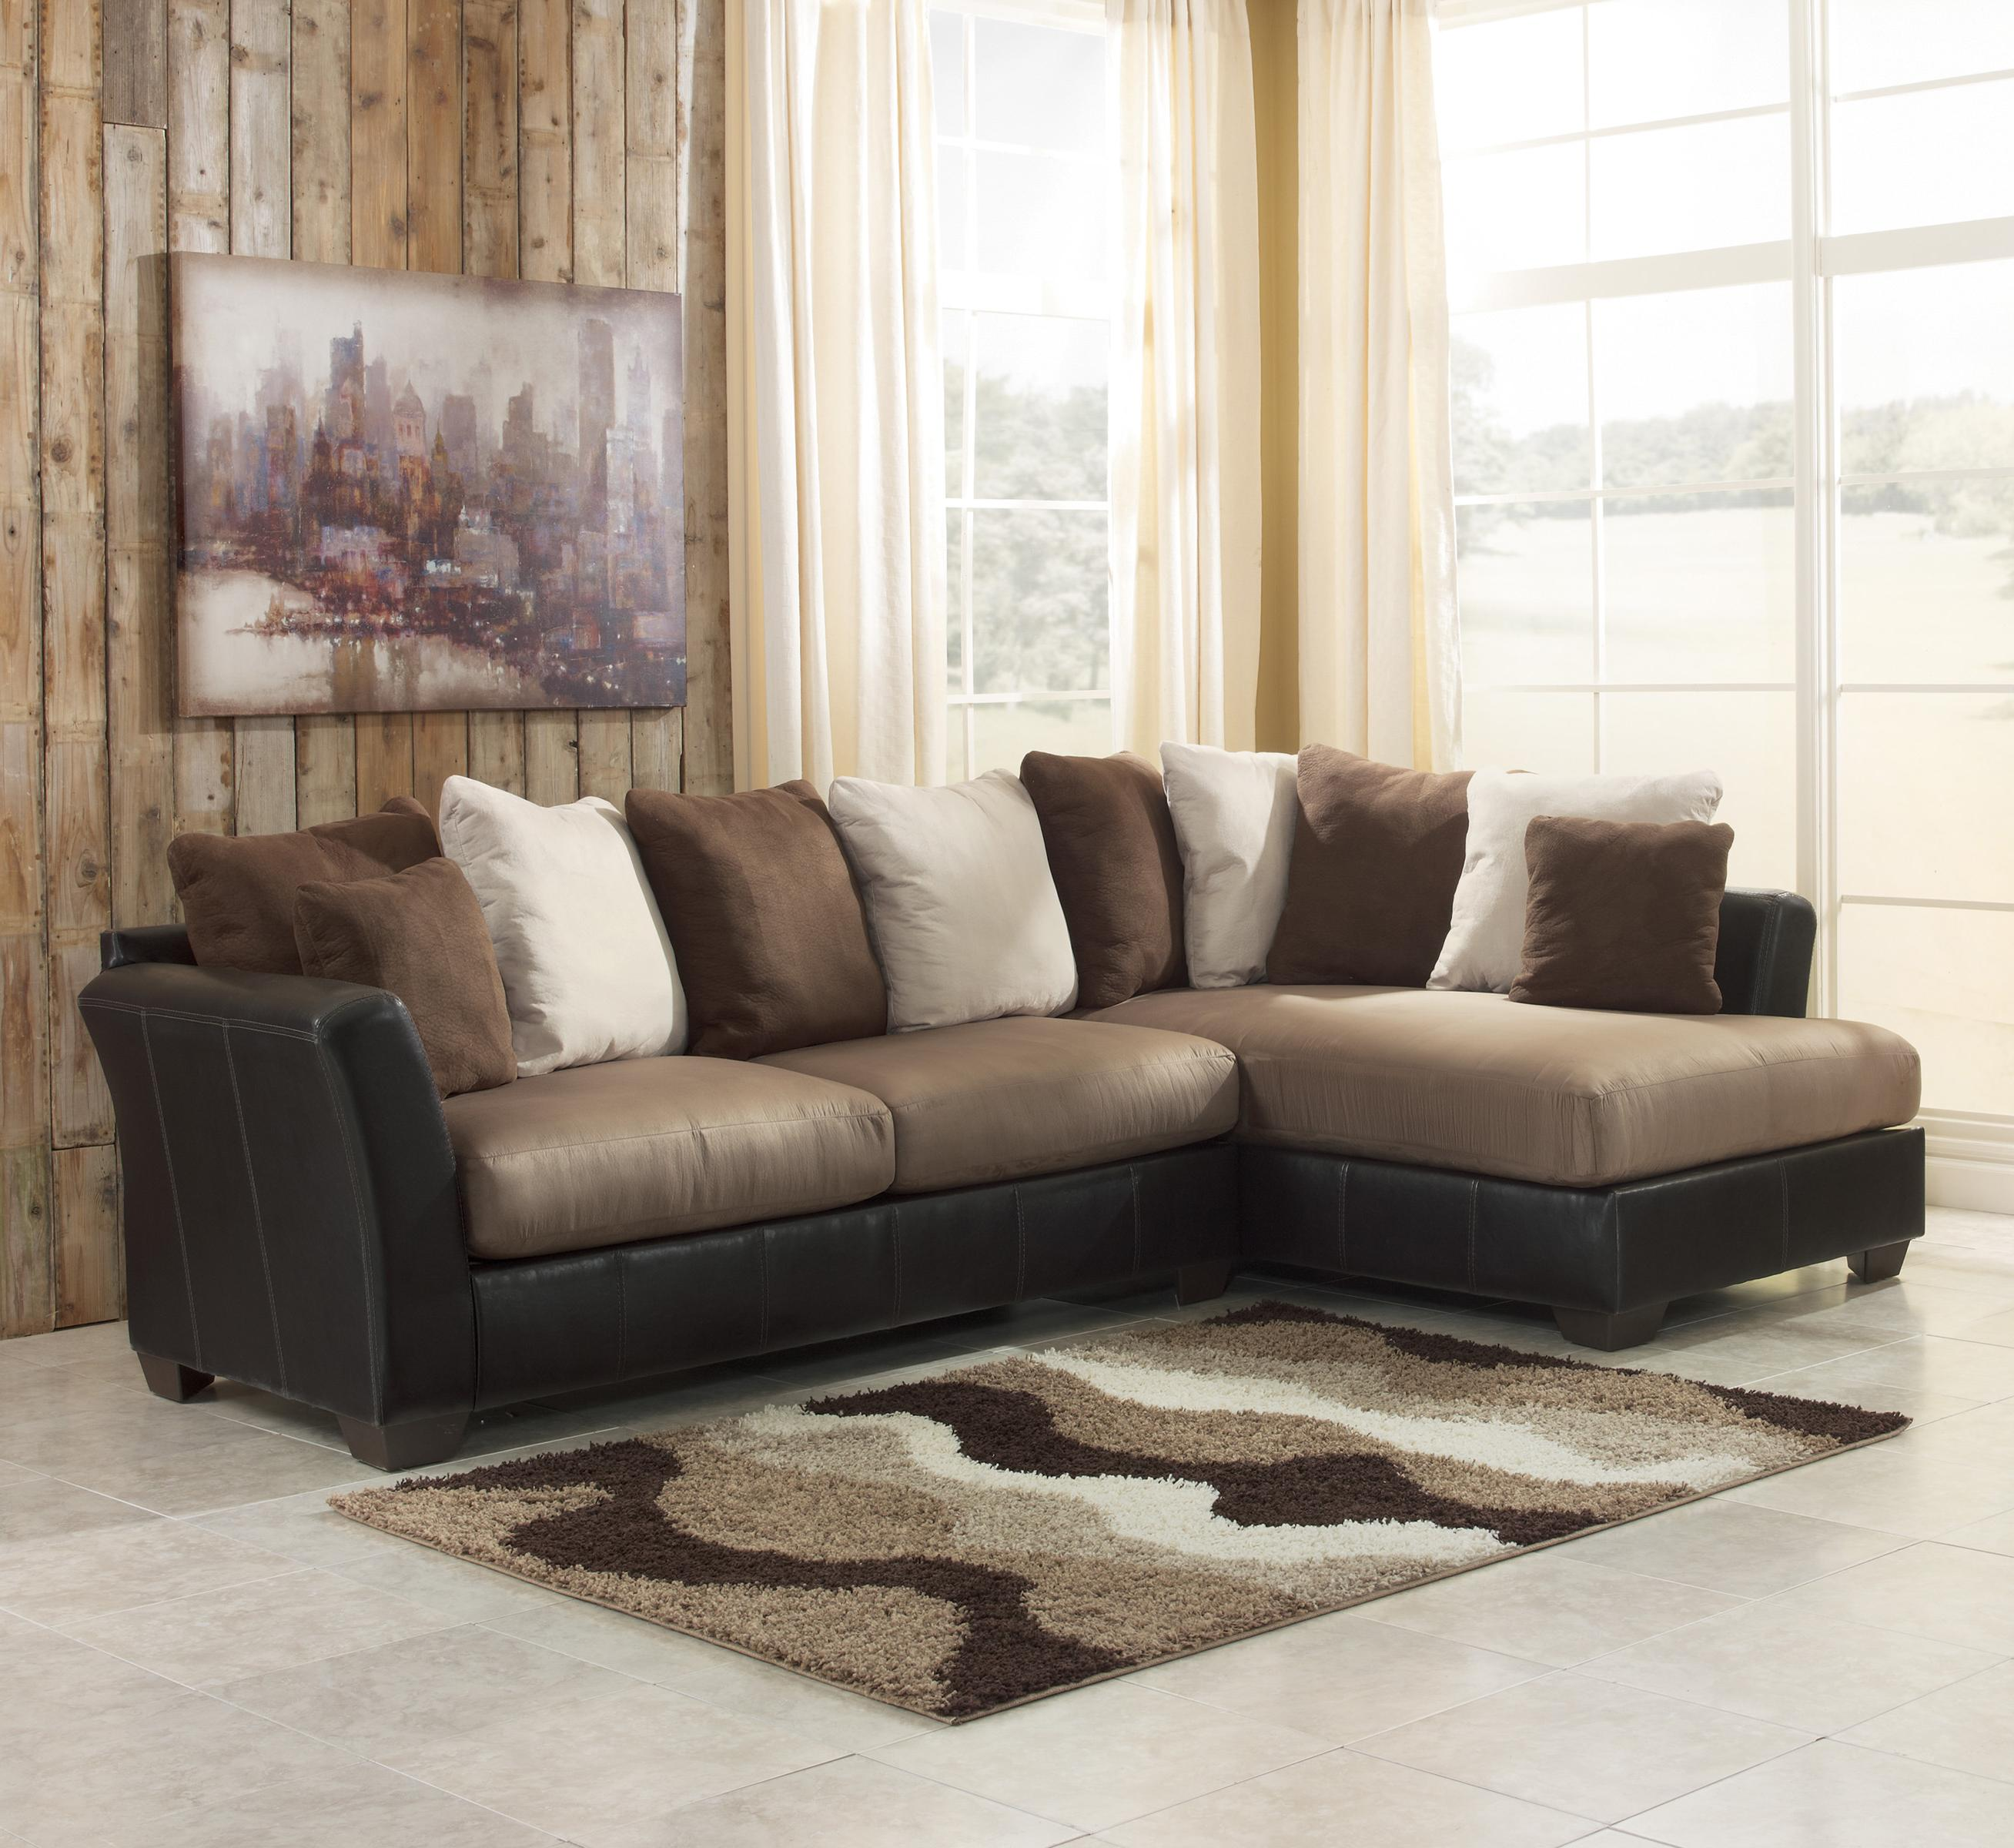 Ashley/Benchcraft Masoli - Mocha 2-Piece Sectional with Chaise - Item Number: 1420166+17